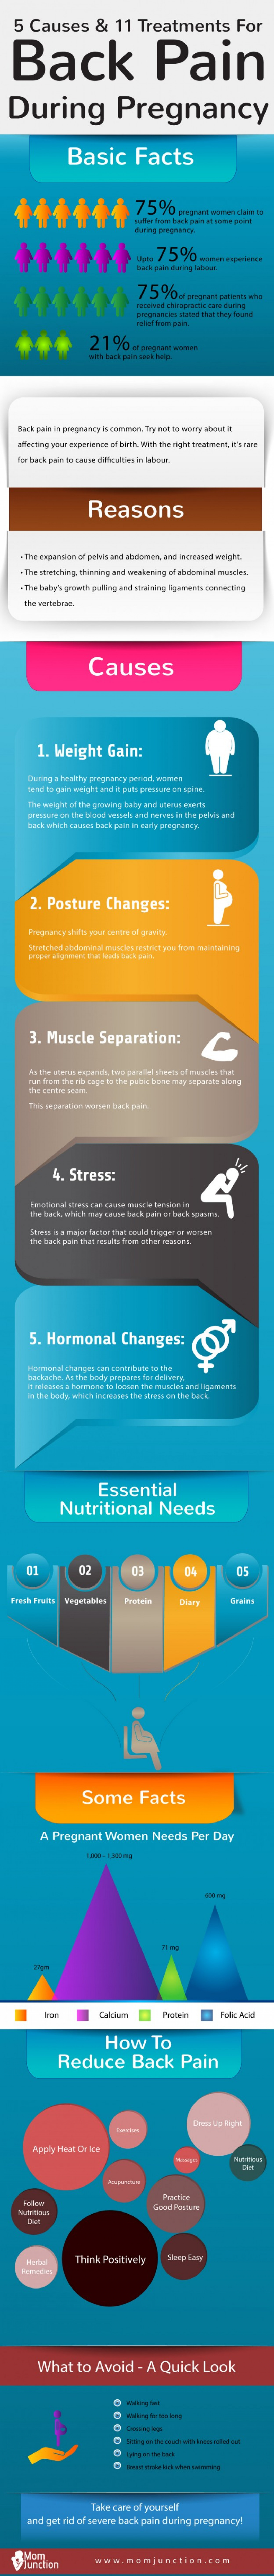 5 Causes & 11 Treatments for Back Pain During Pregnancy Infographic